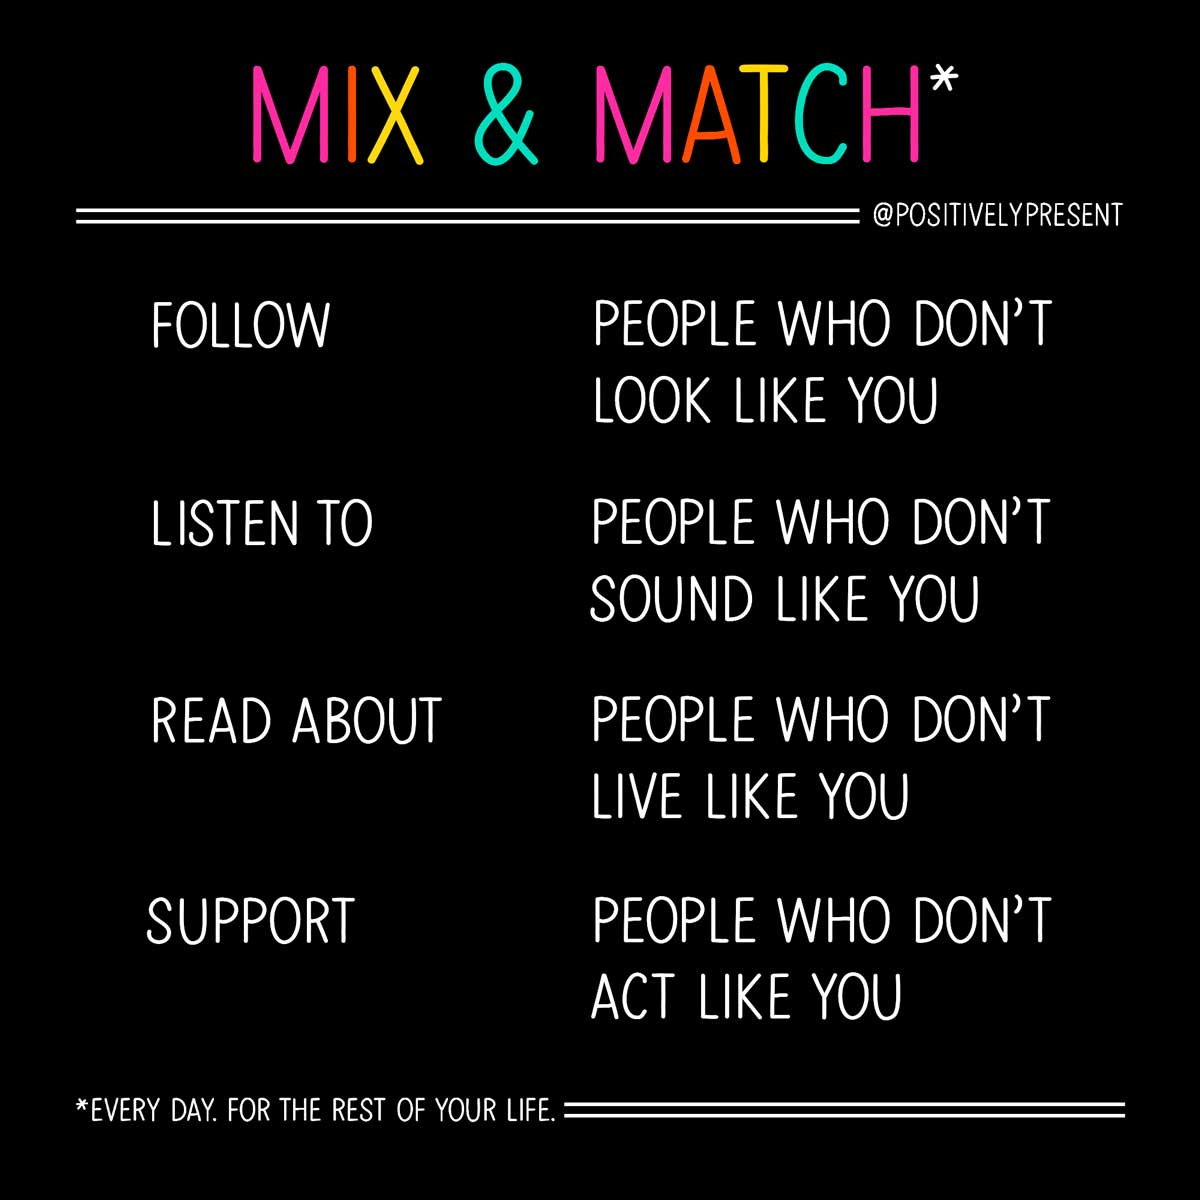 follow people who don't look like you mix and match text on black background.